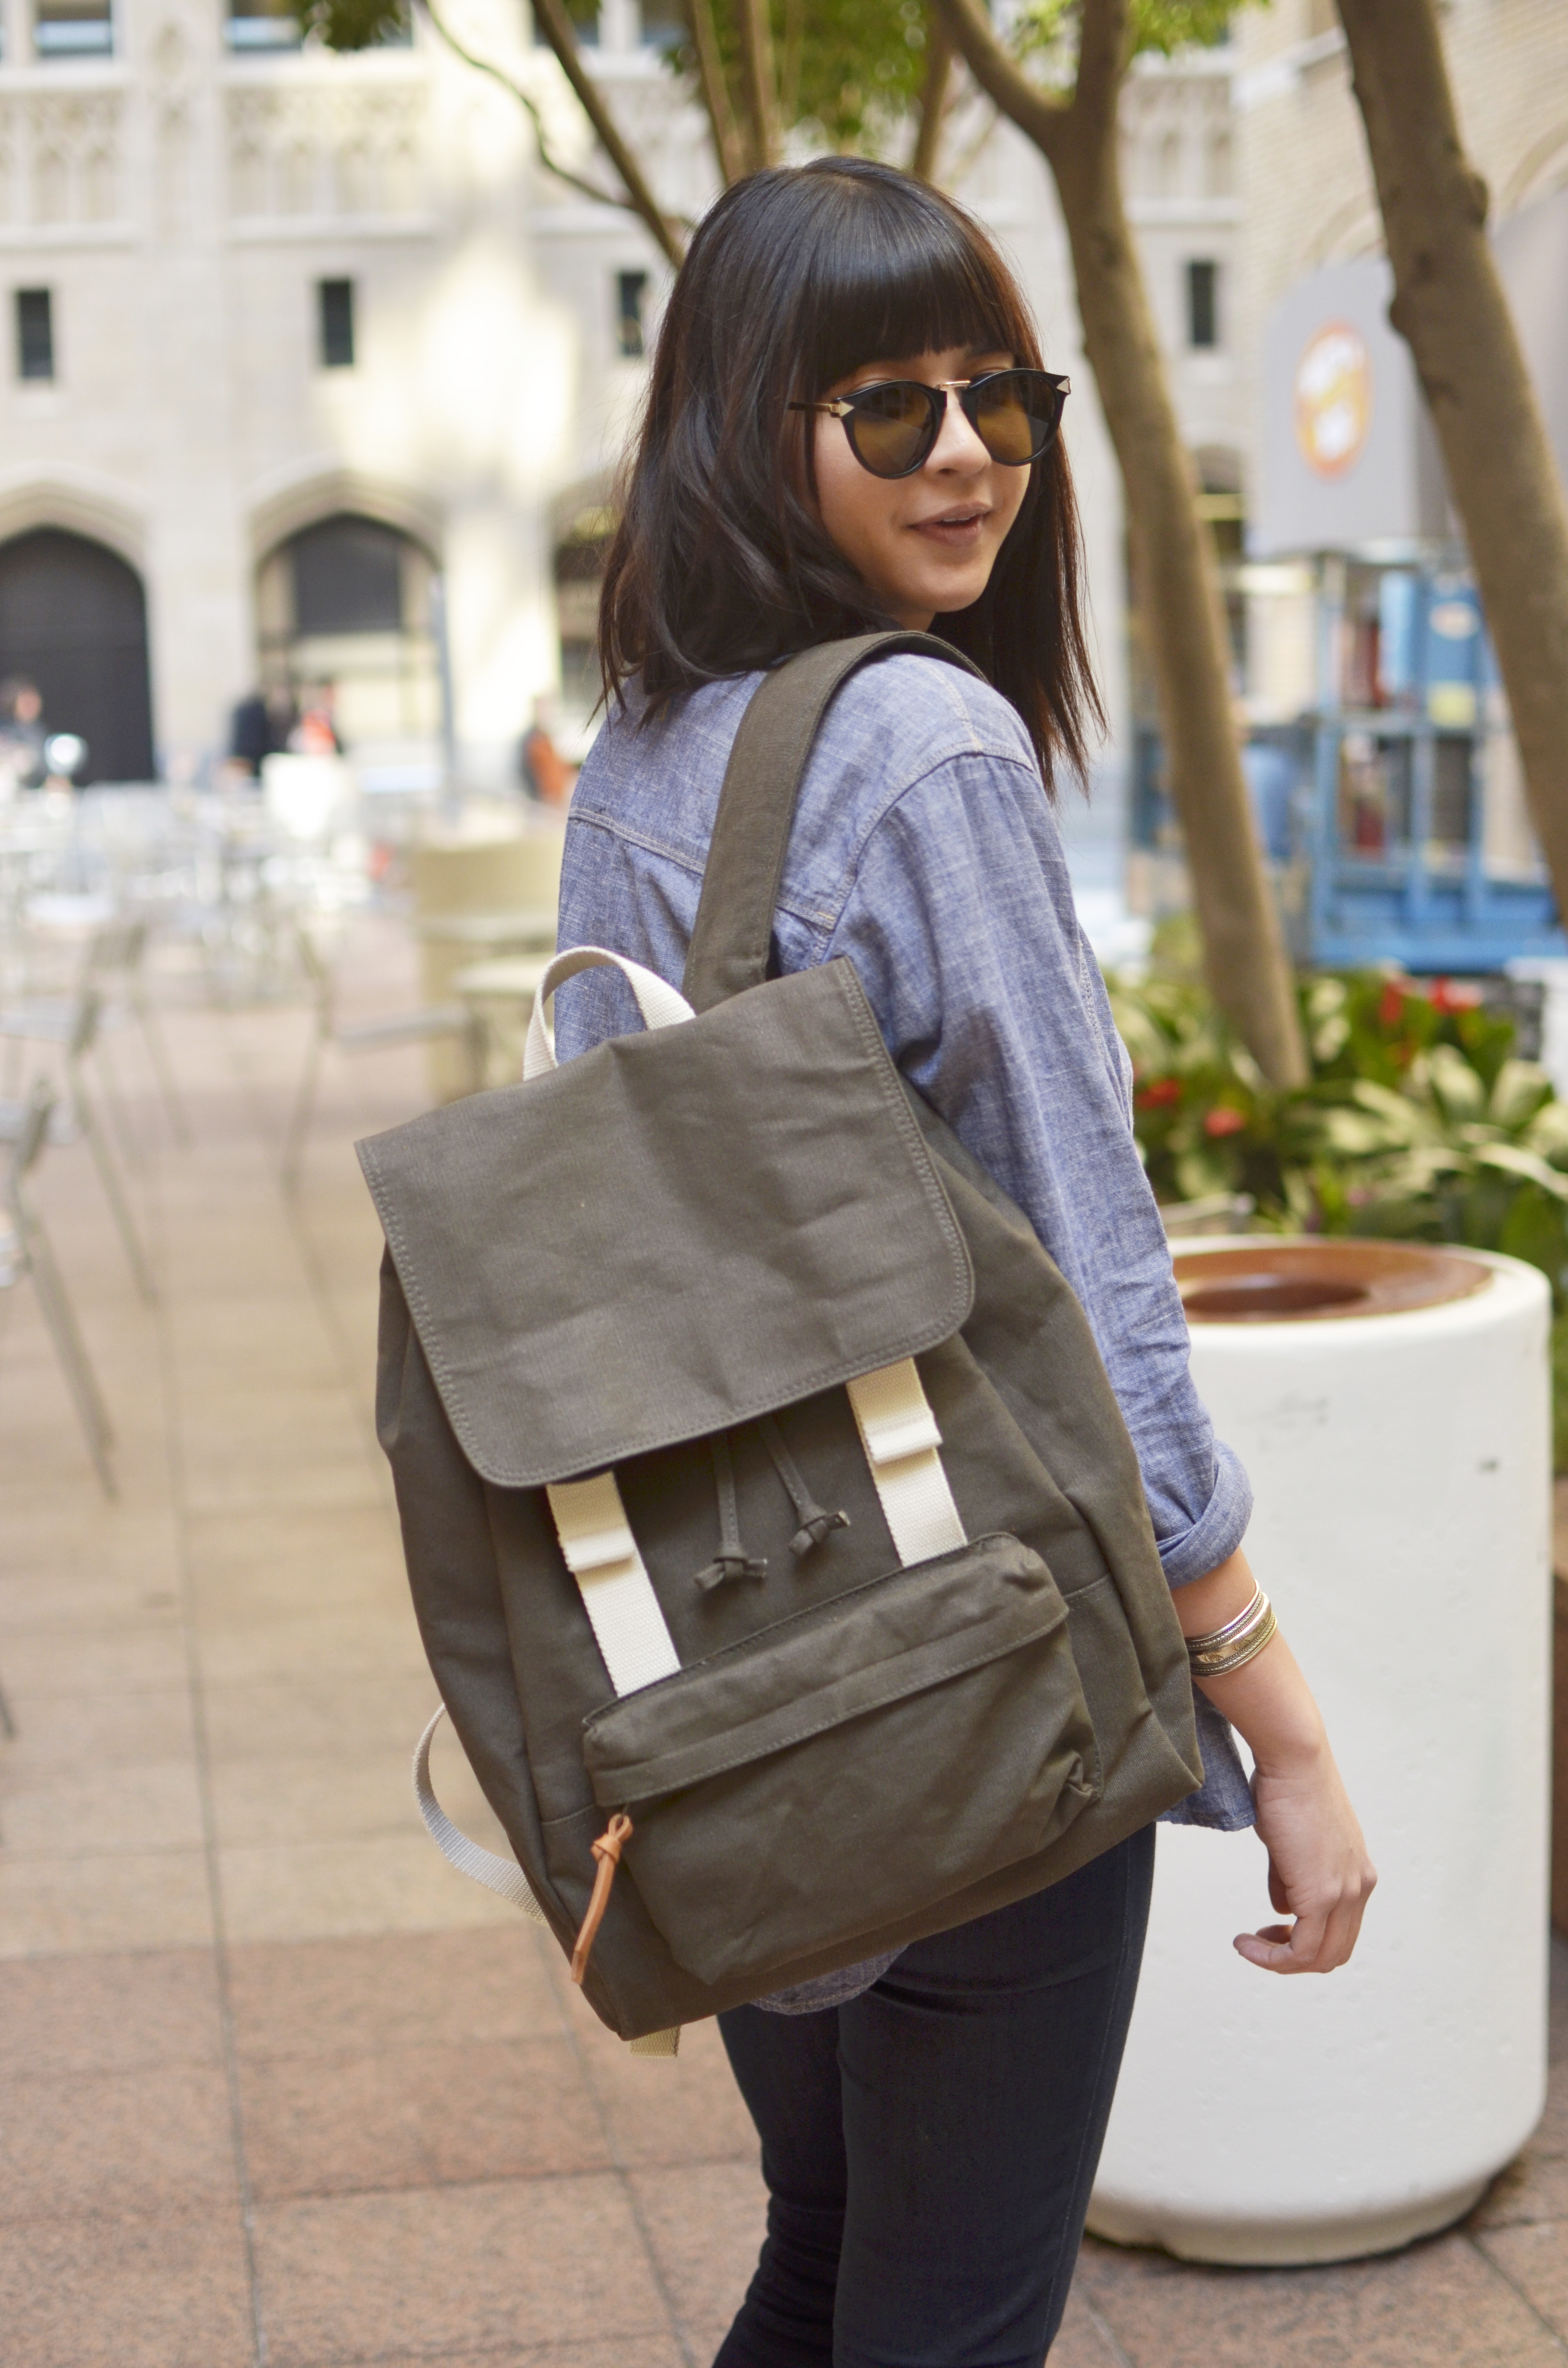 everlane backpack